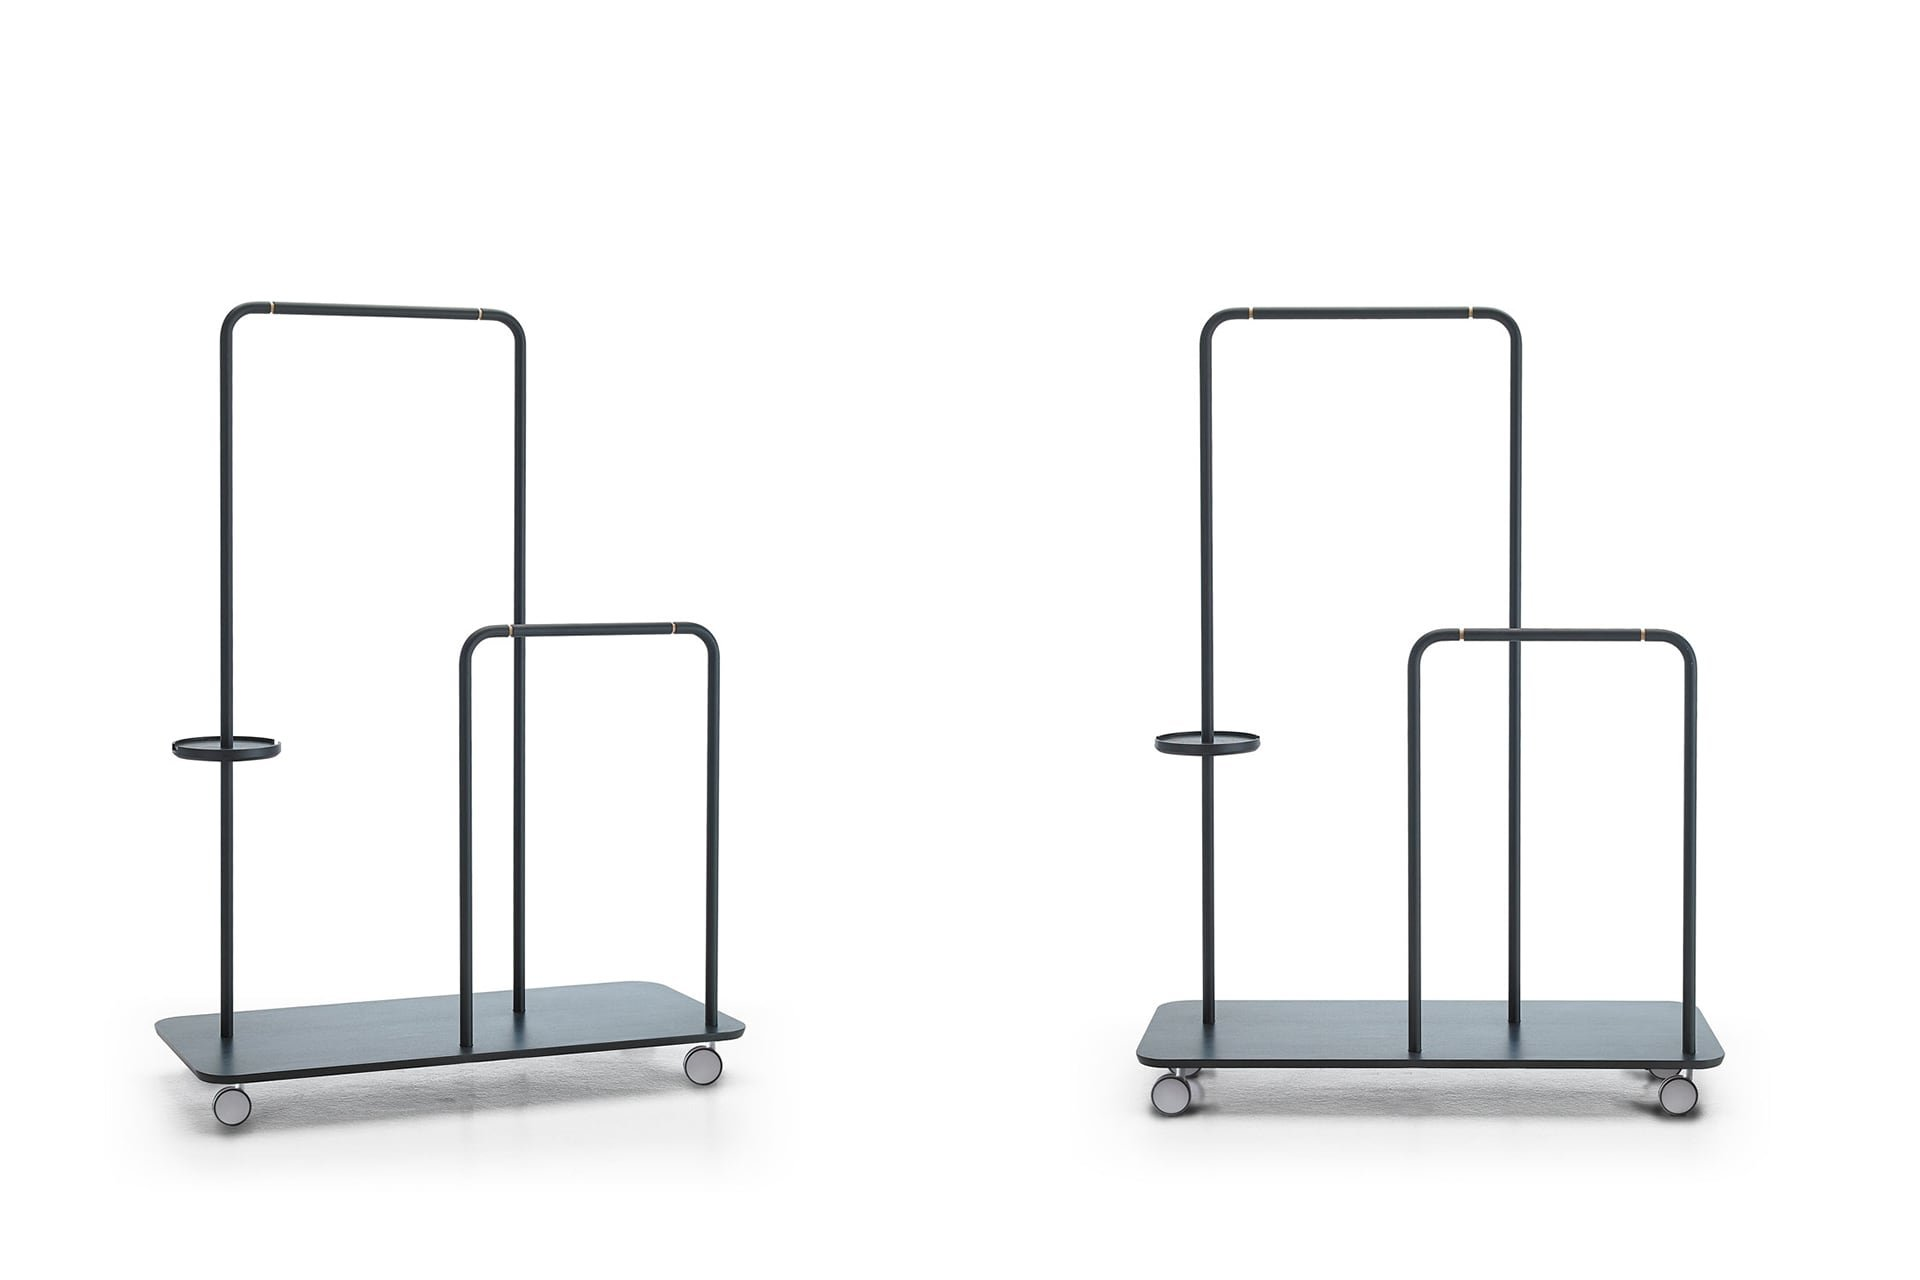 Platel Coat Hanger accessory from Punt Mobles